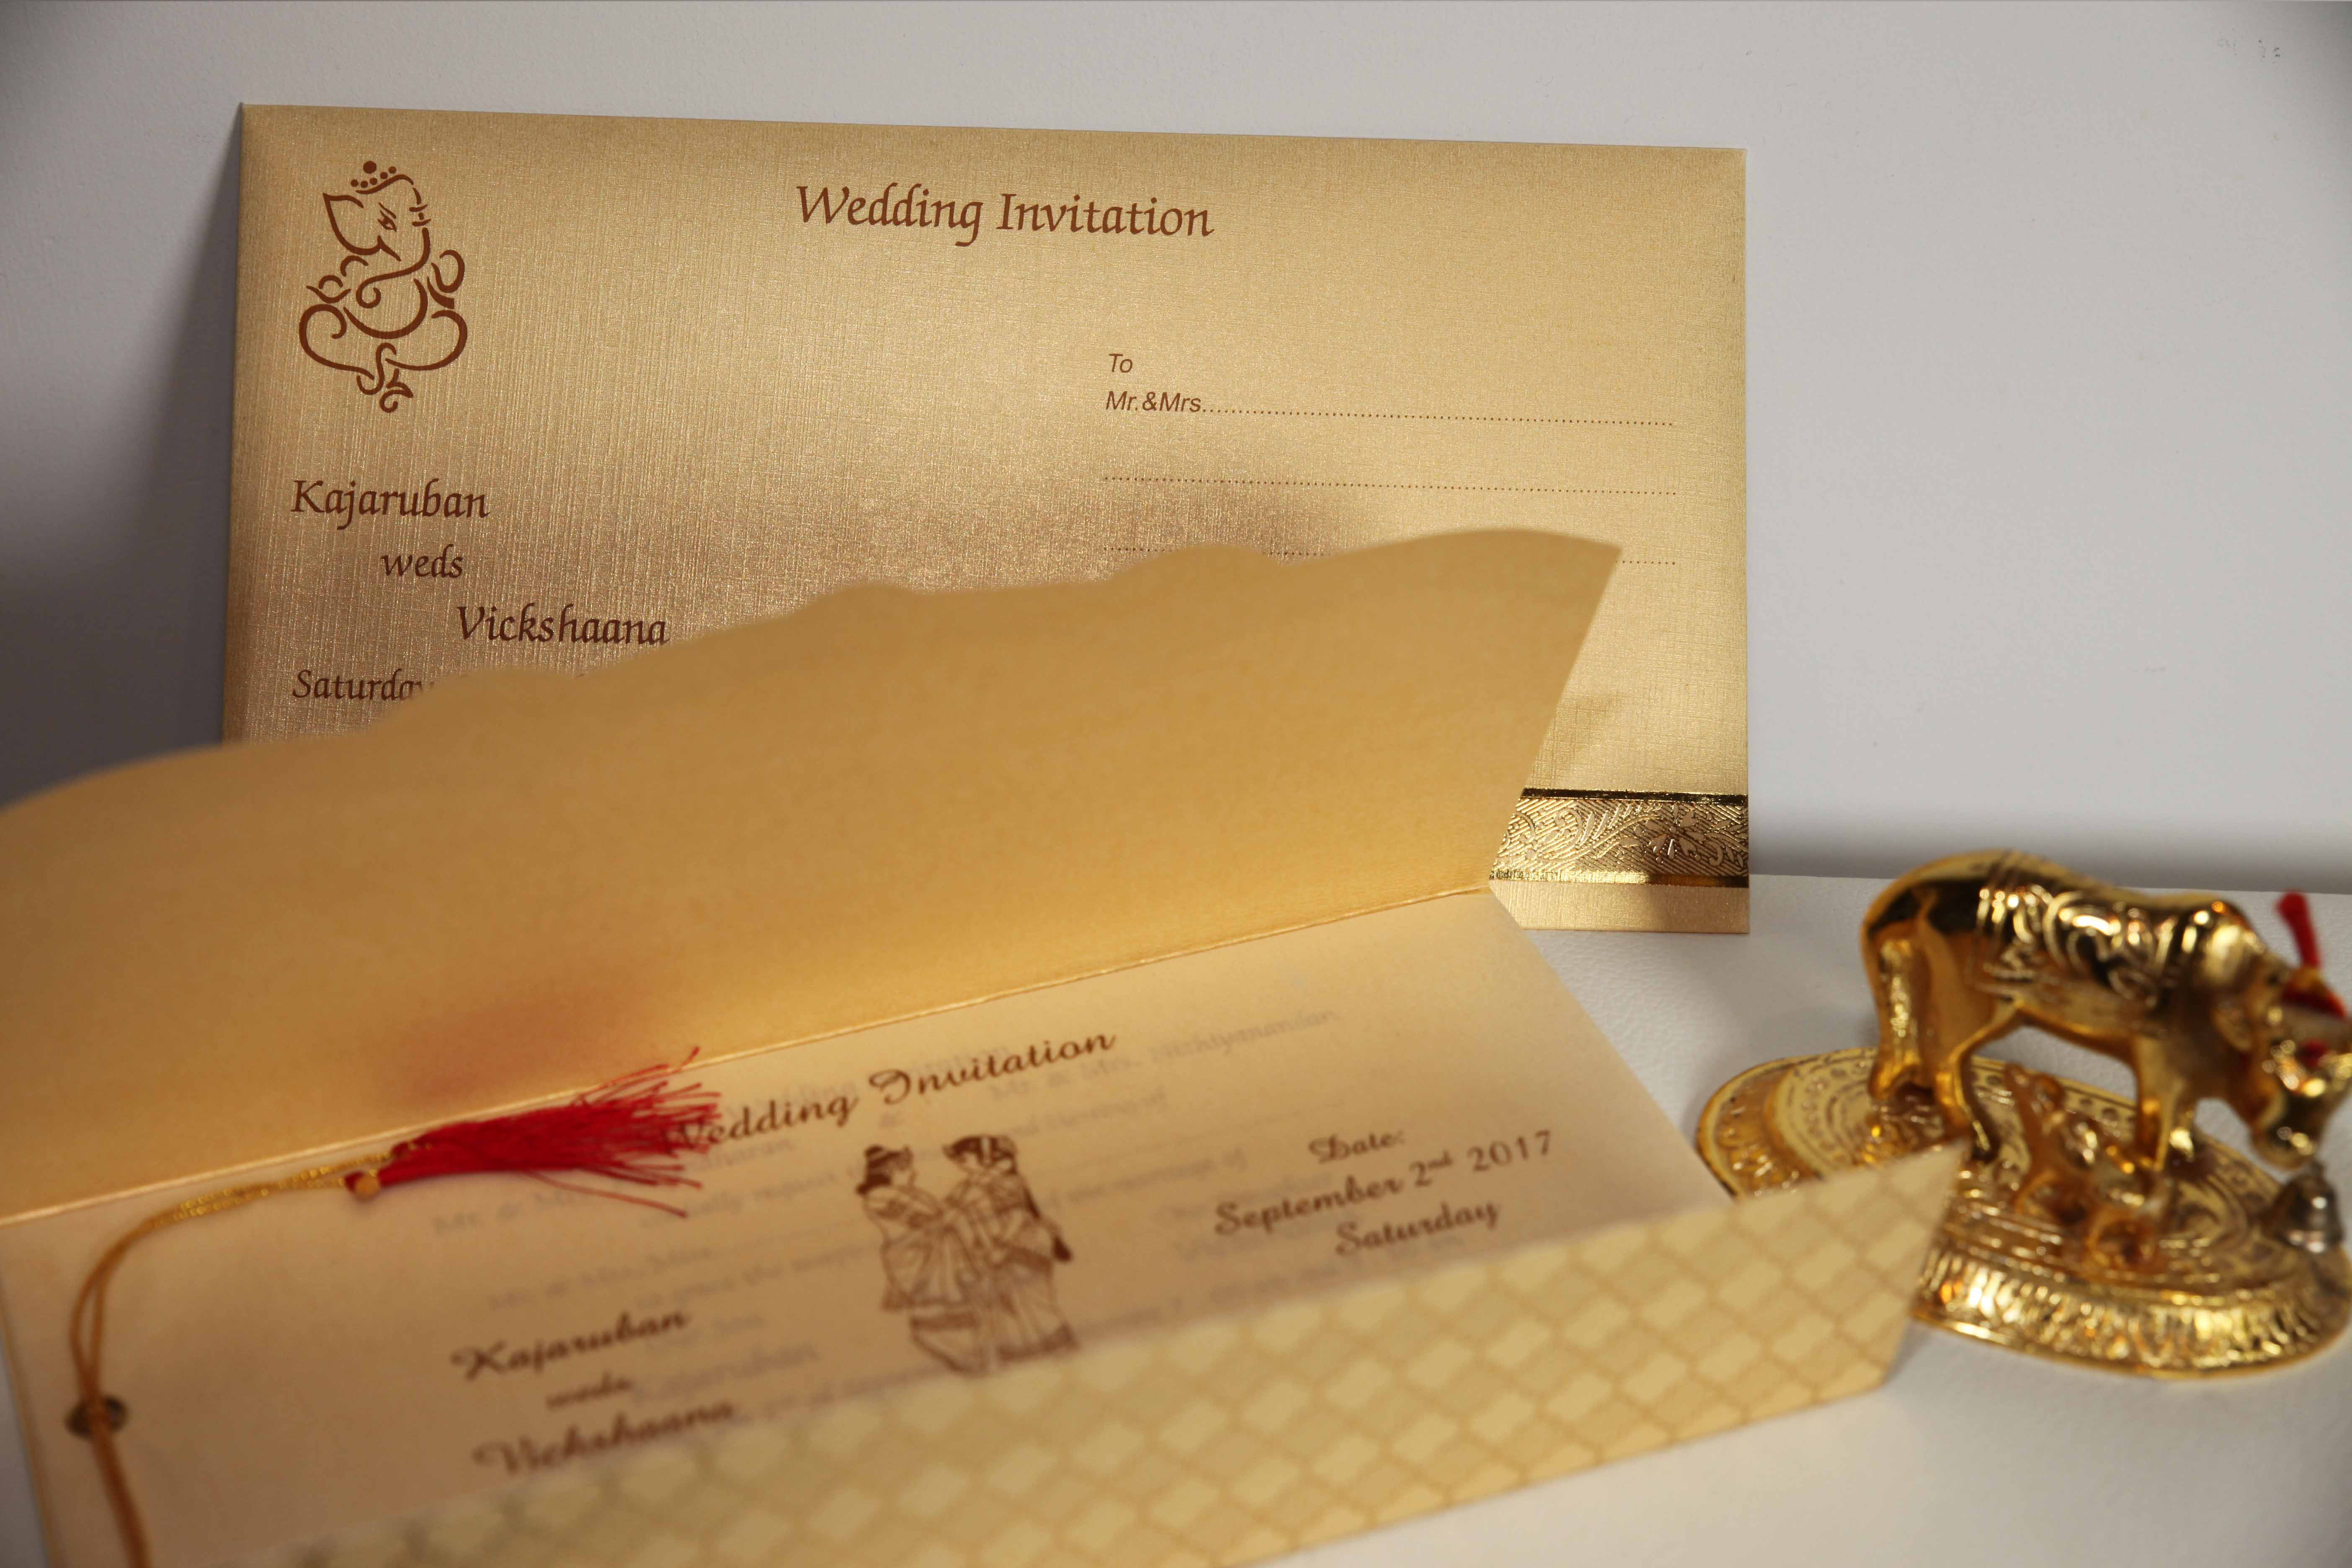 Hindu Wedding Invitation Card: Indian Tamil Wedding Cards Is A Well Known Brand In The UK